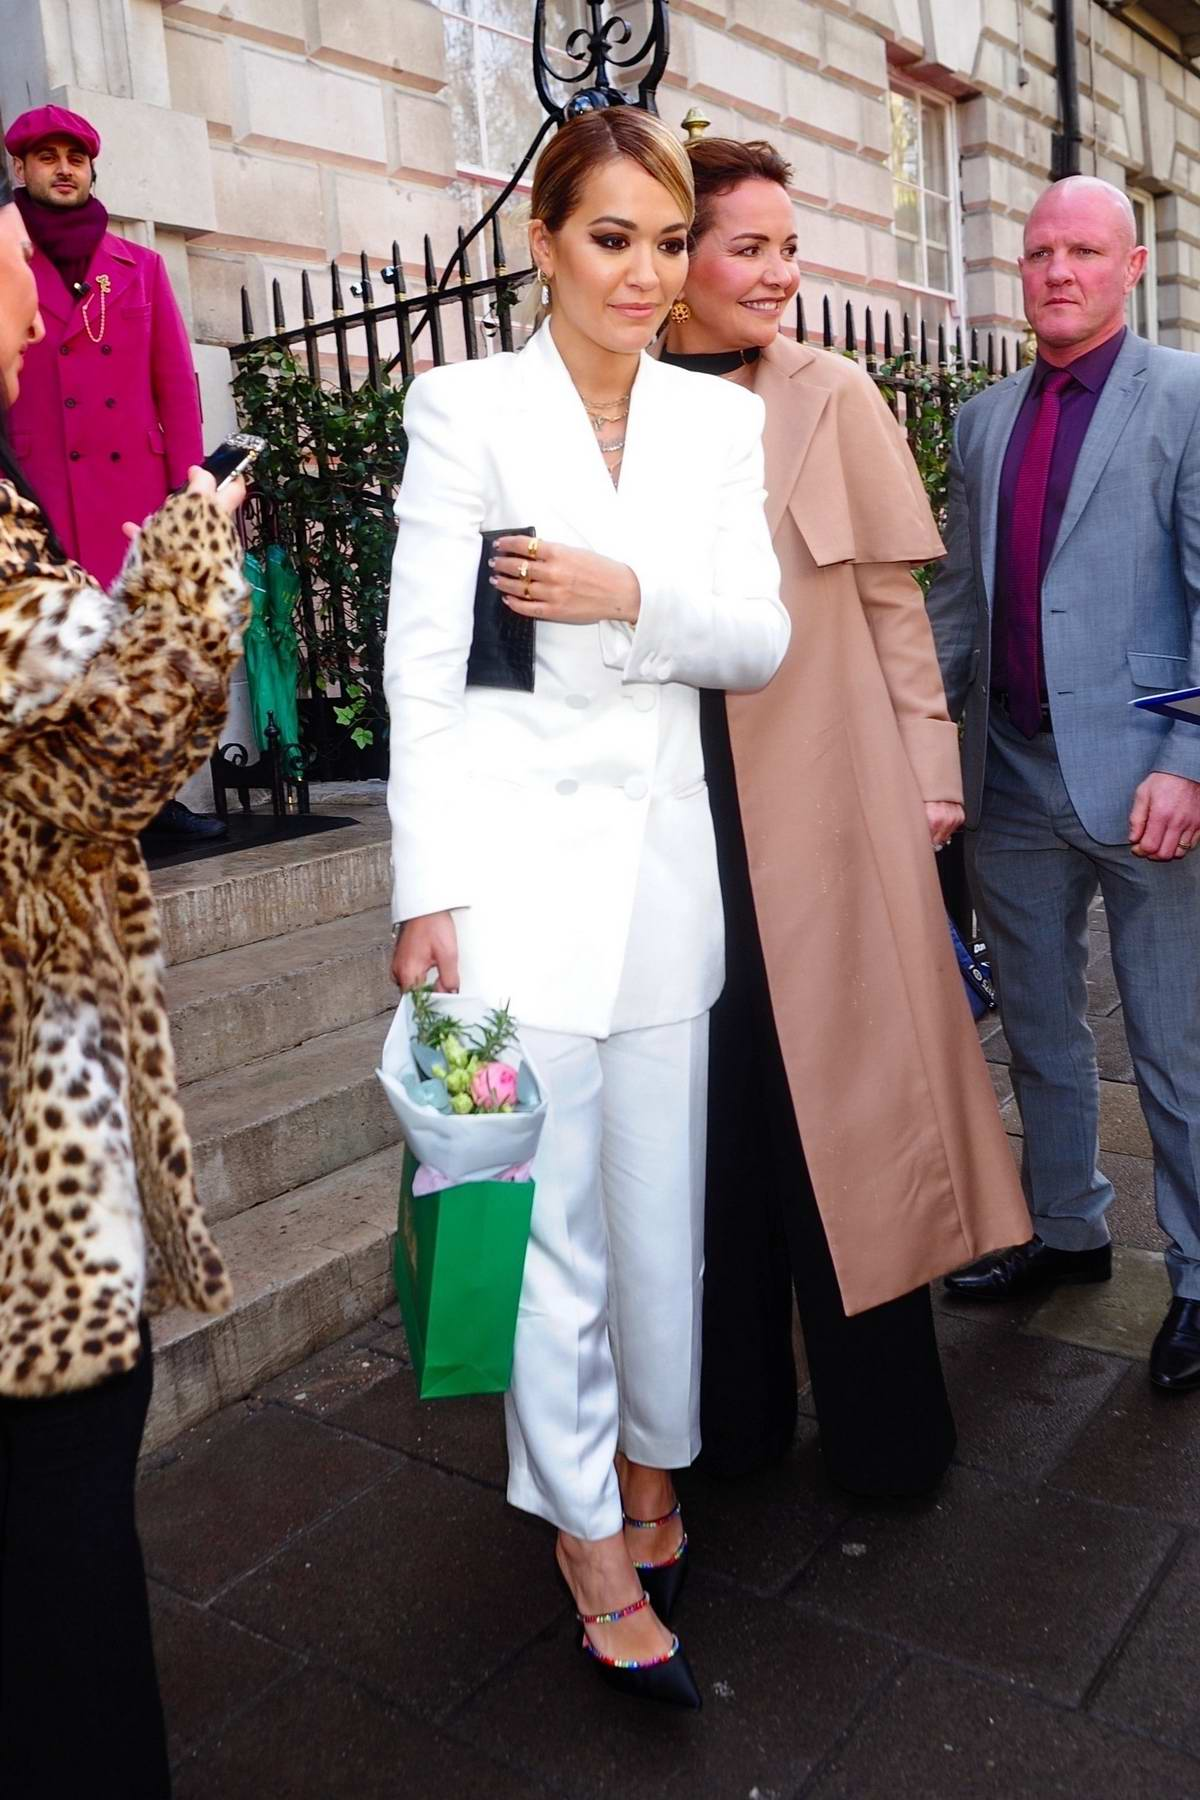 Rita Ora and her mother attend International Women's Day for The Caring Foundation at Annabel's in London, UK